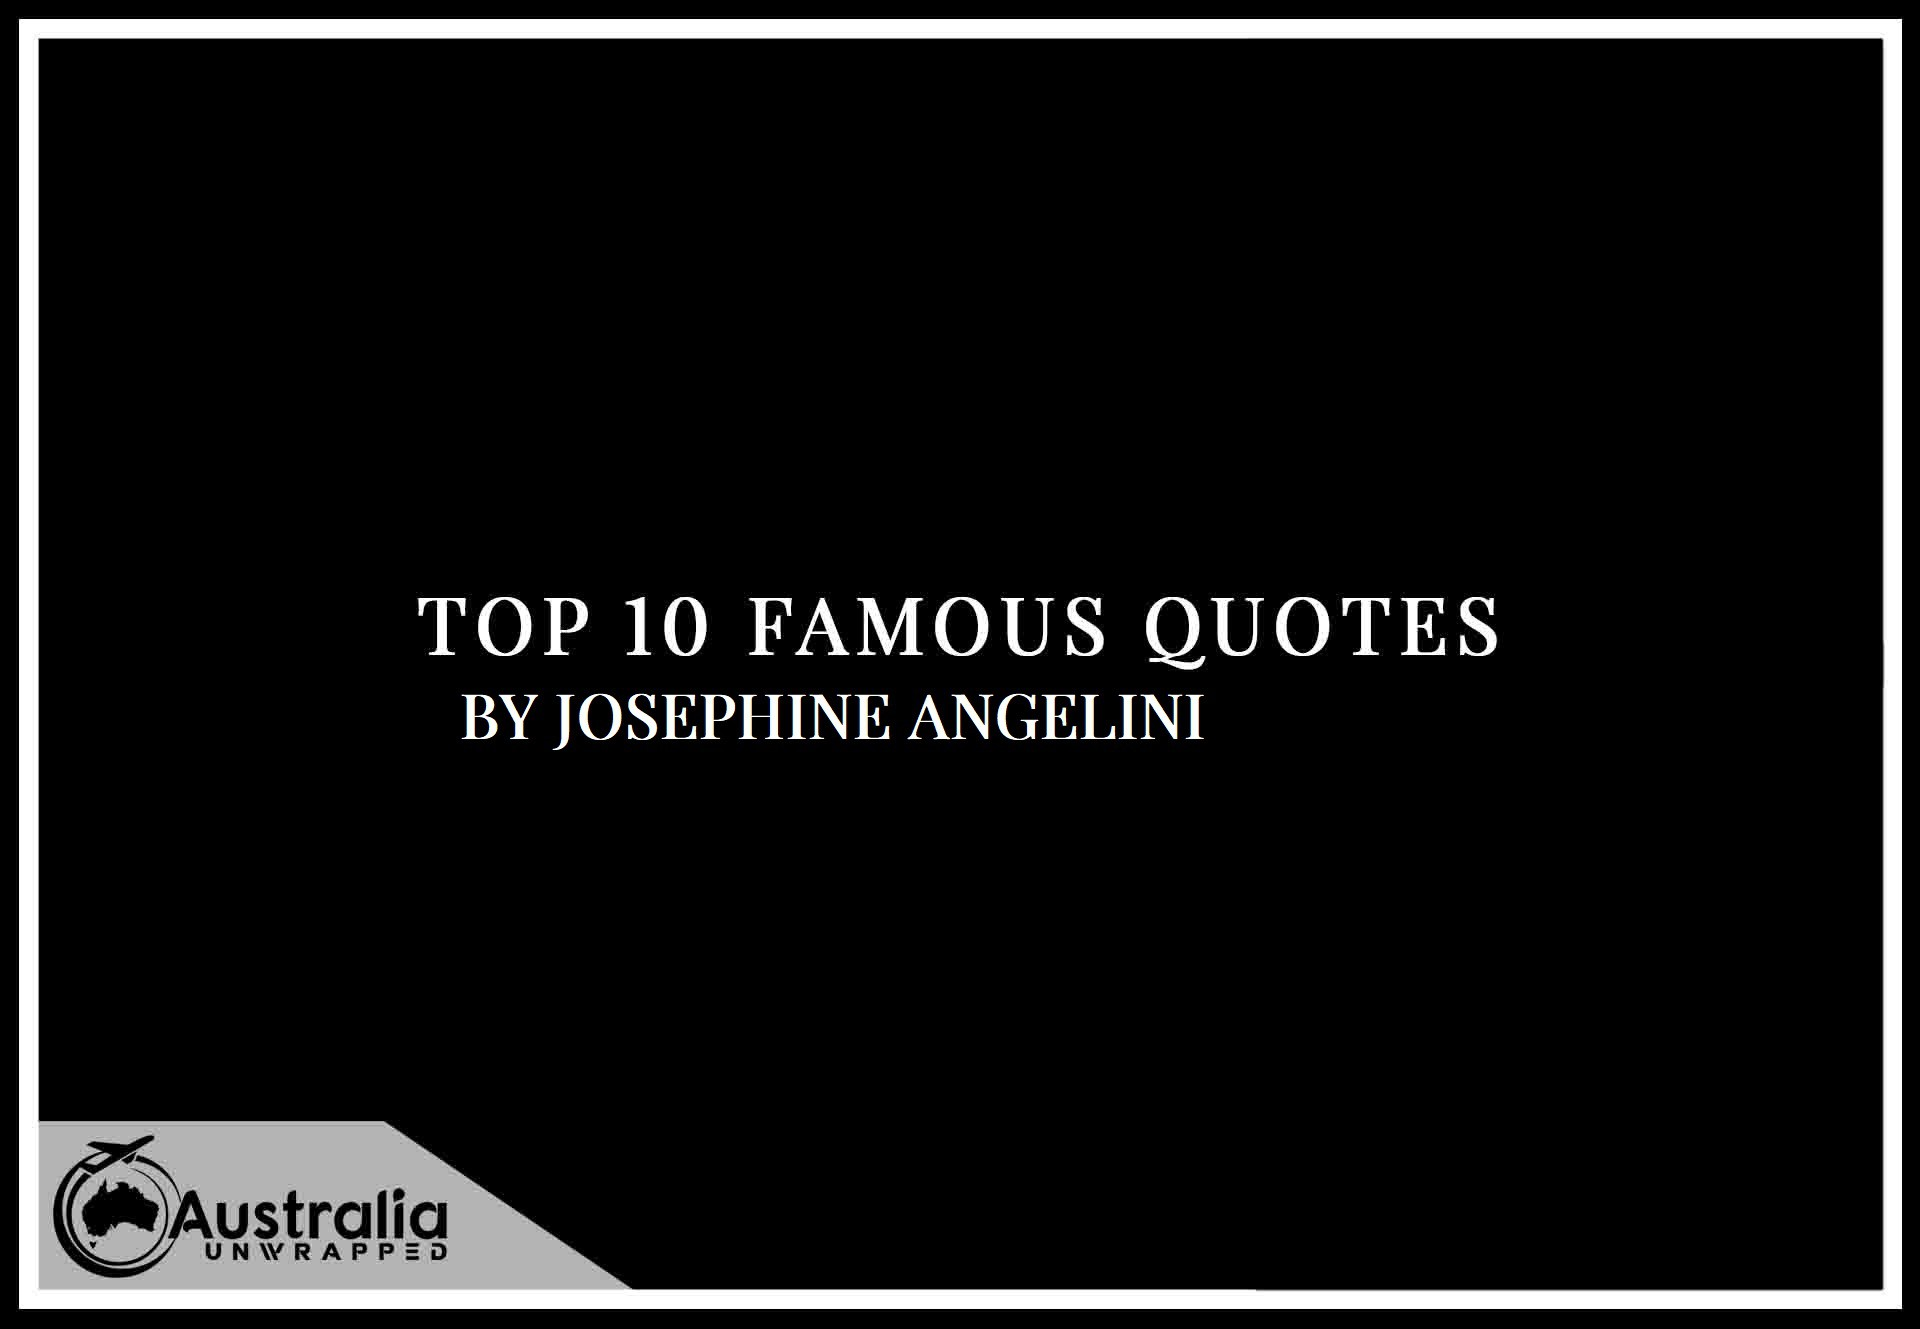 Top 10 Famous Quotes by Author Josephine Angelini